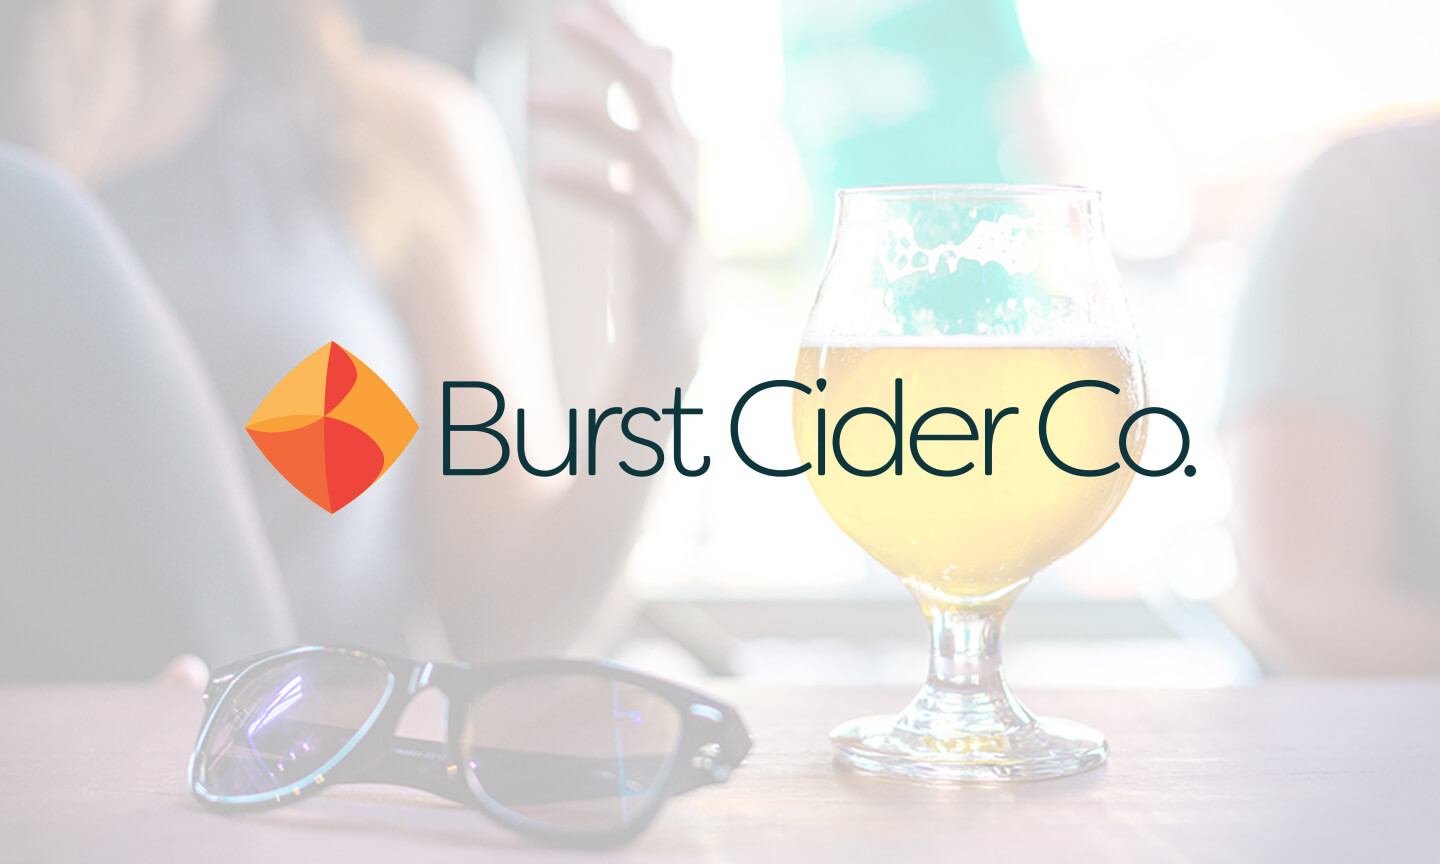 The Burst Cider Co logo overlayed on a photo of a cider poured into a glass on a table in a restaurant.